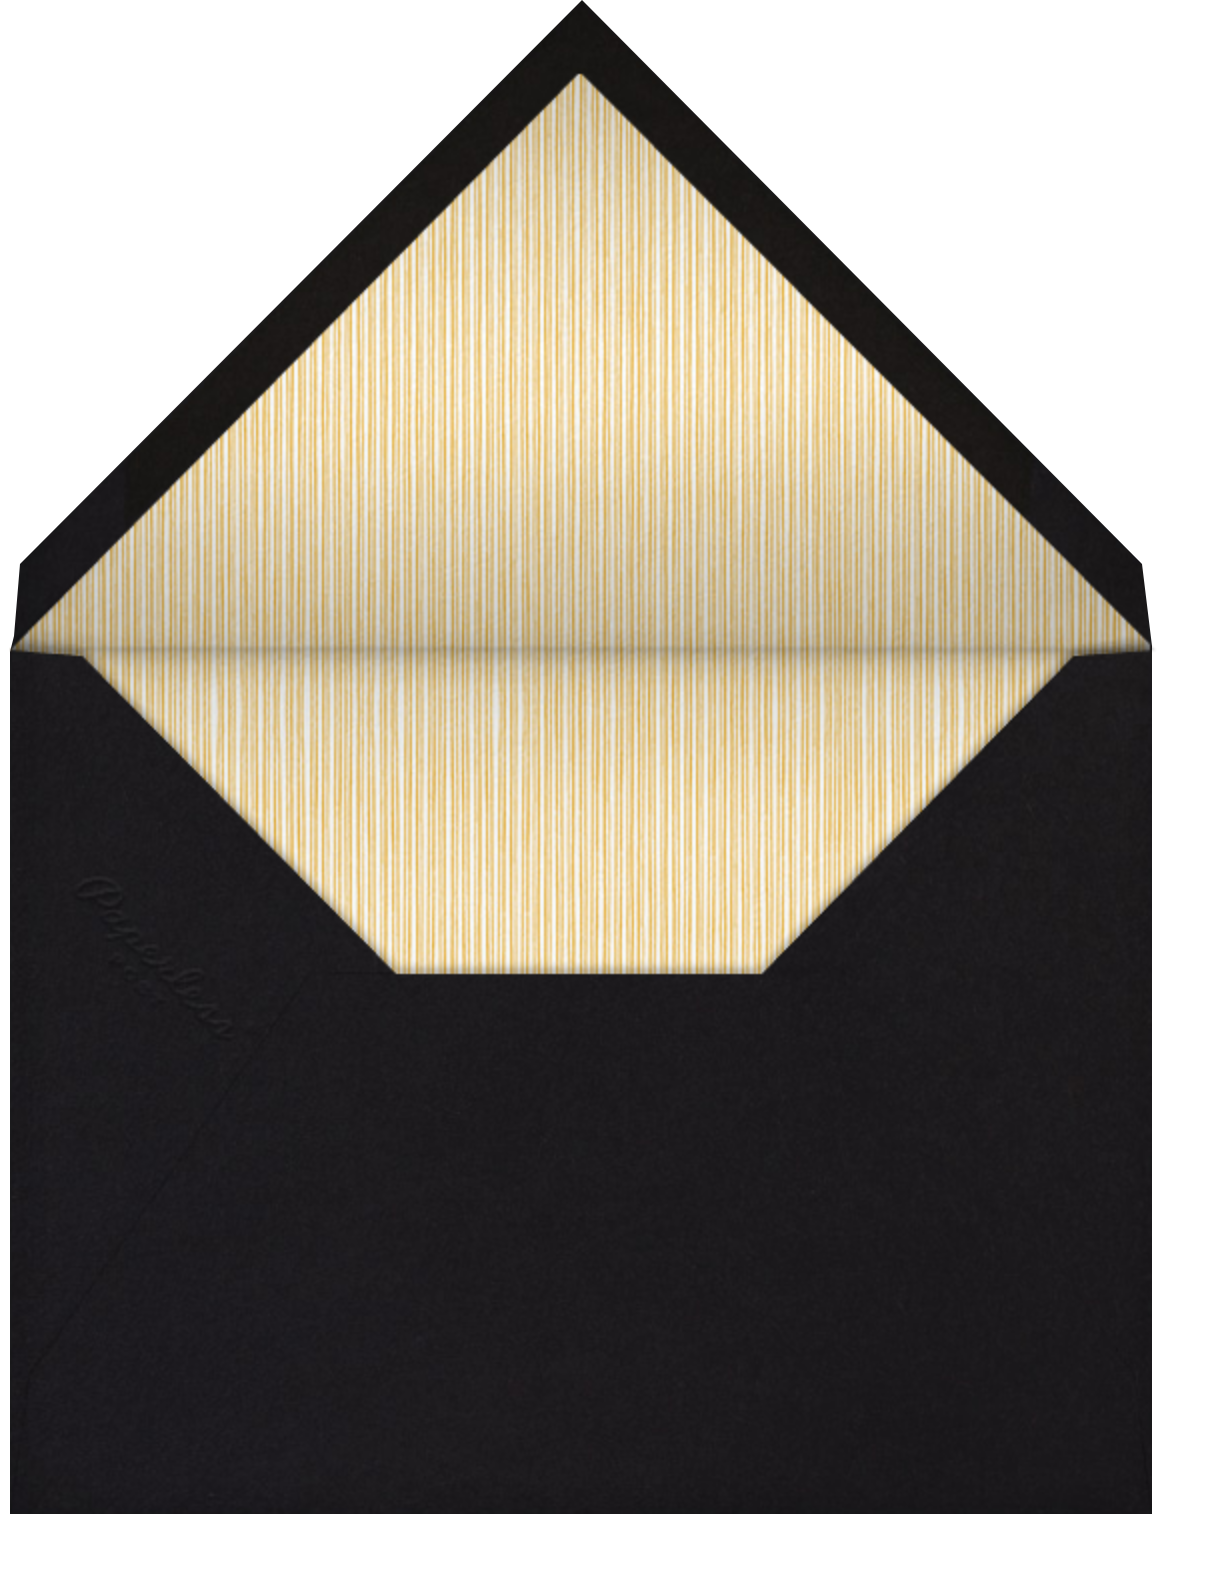 Longhorn Barbeque (Ivory) - Paperless Post - Barbecue - envelope back